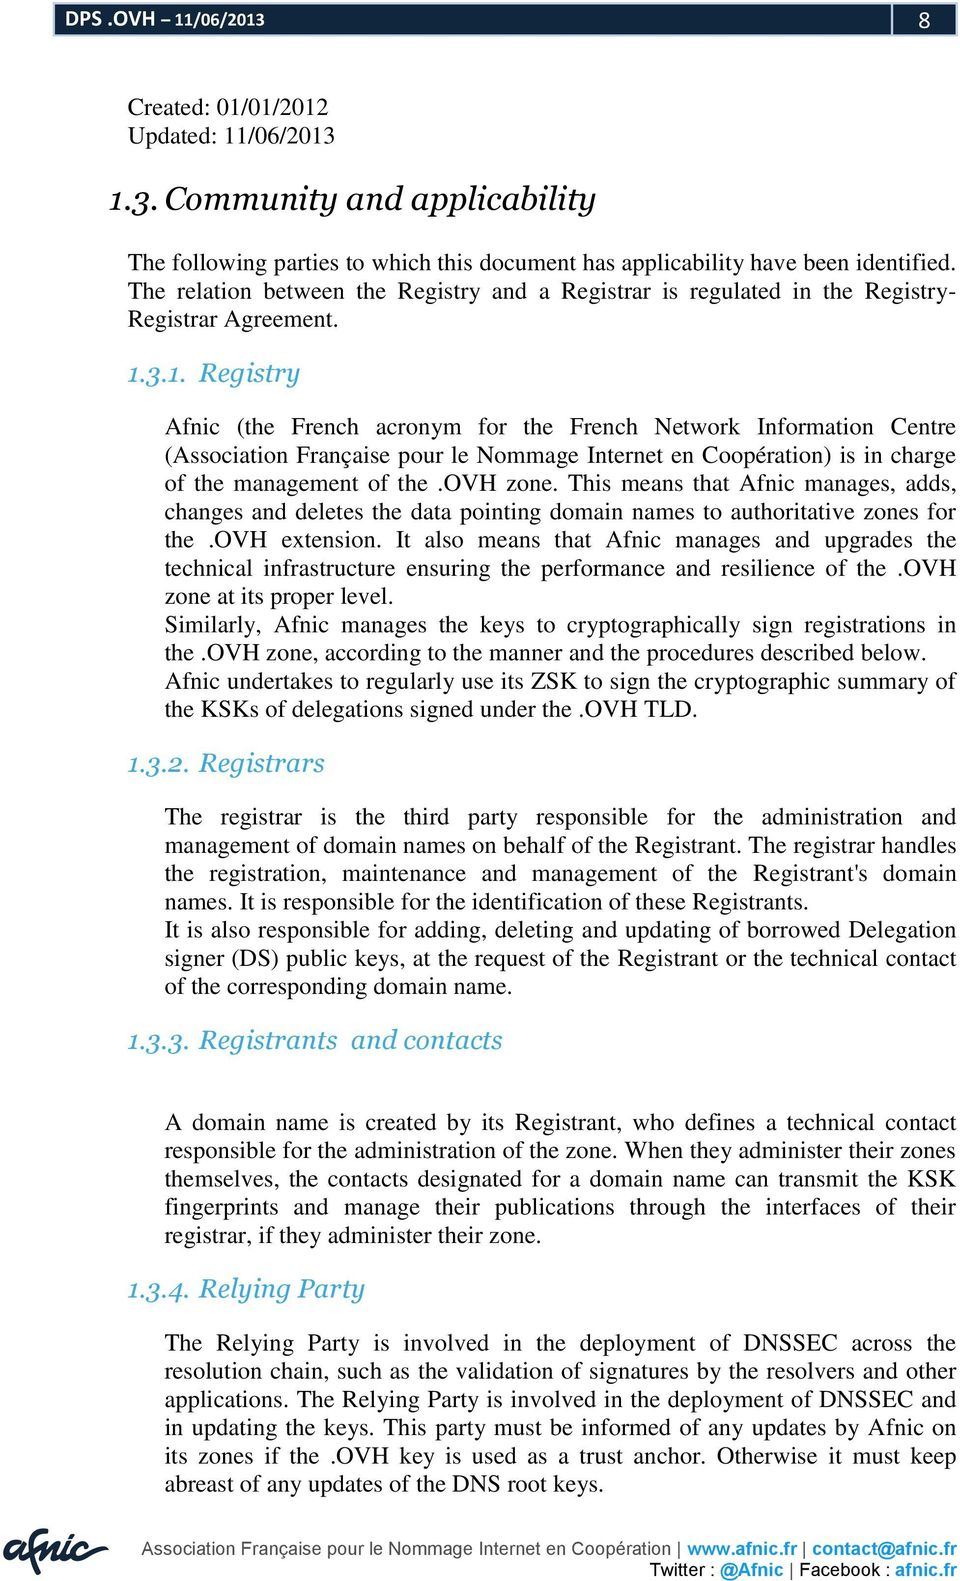 3.1. Registry Afnic (the French acronym for the French Network Information Centre (Association Française pour le Nommage Internet en Coopération) is in charge of the management of the.ovh zone.